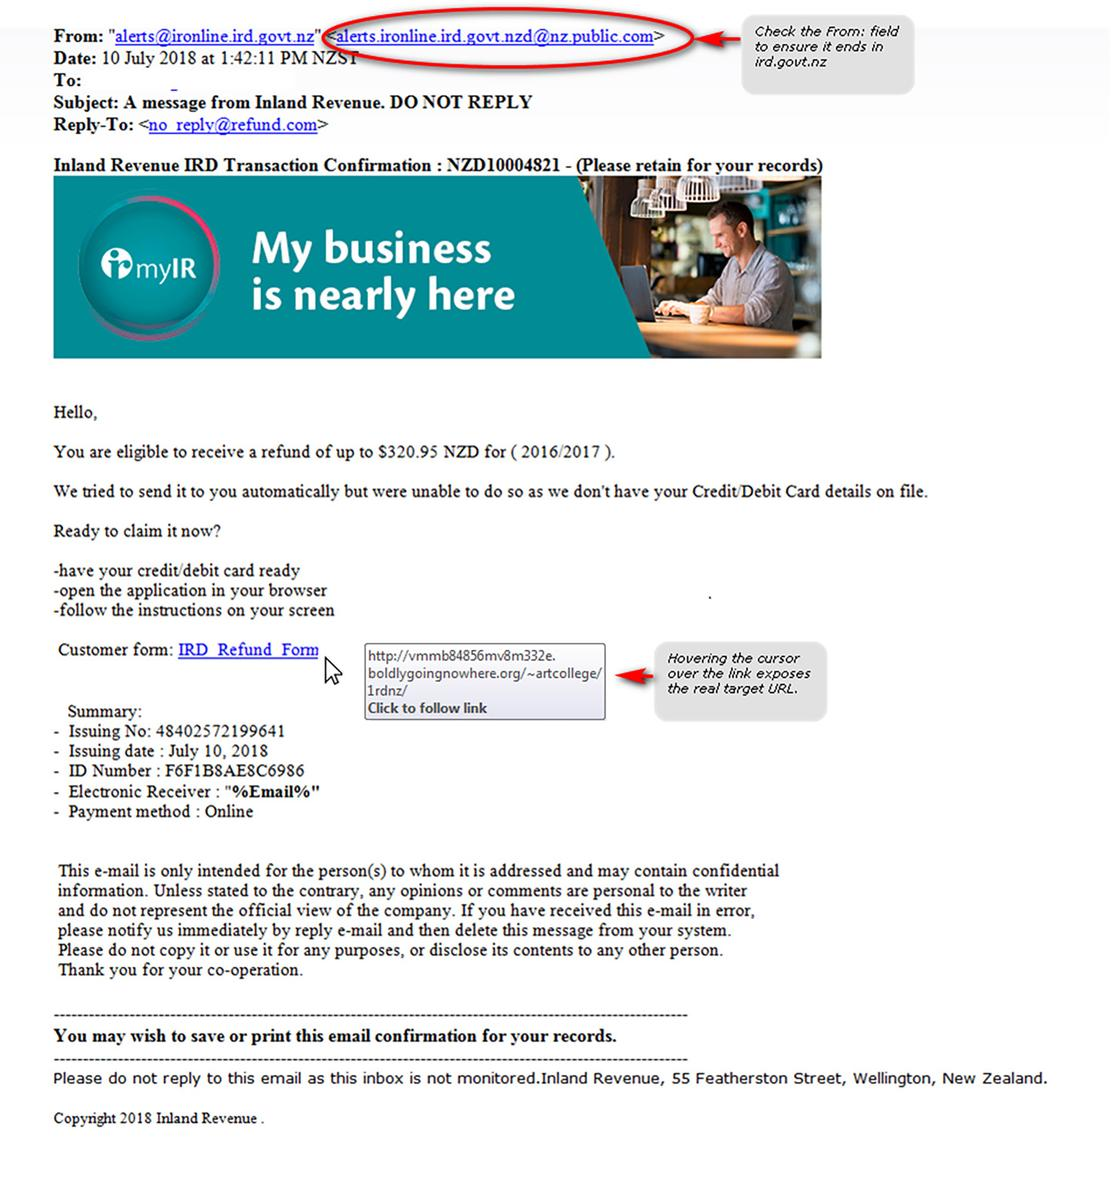 """Sophisticated"""" email scam hits Kiwi inboxes impersonating IRD"""